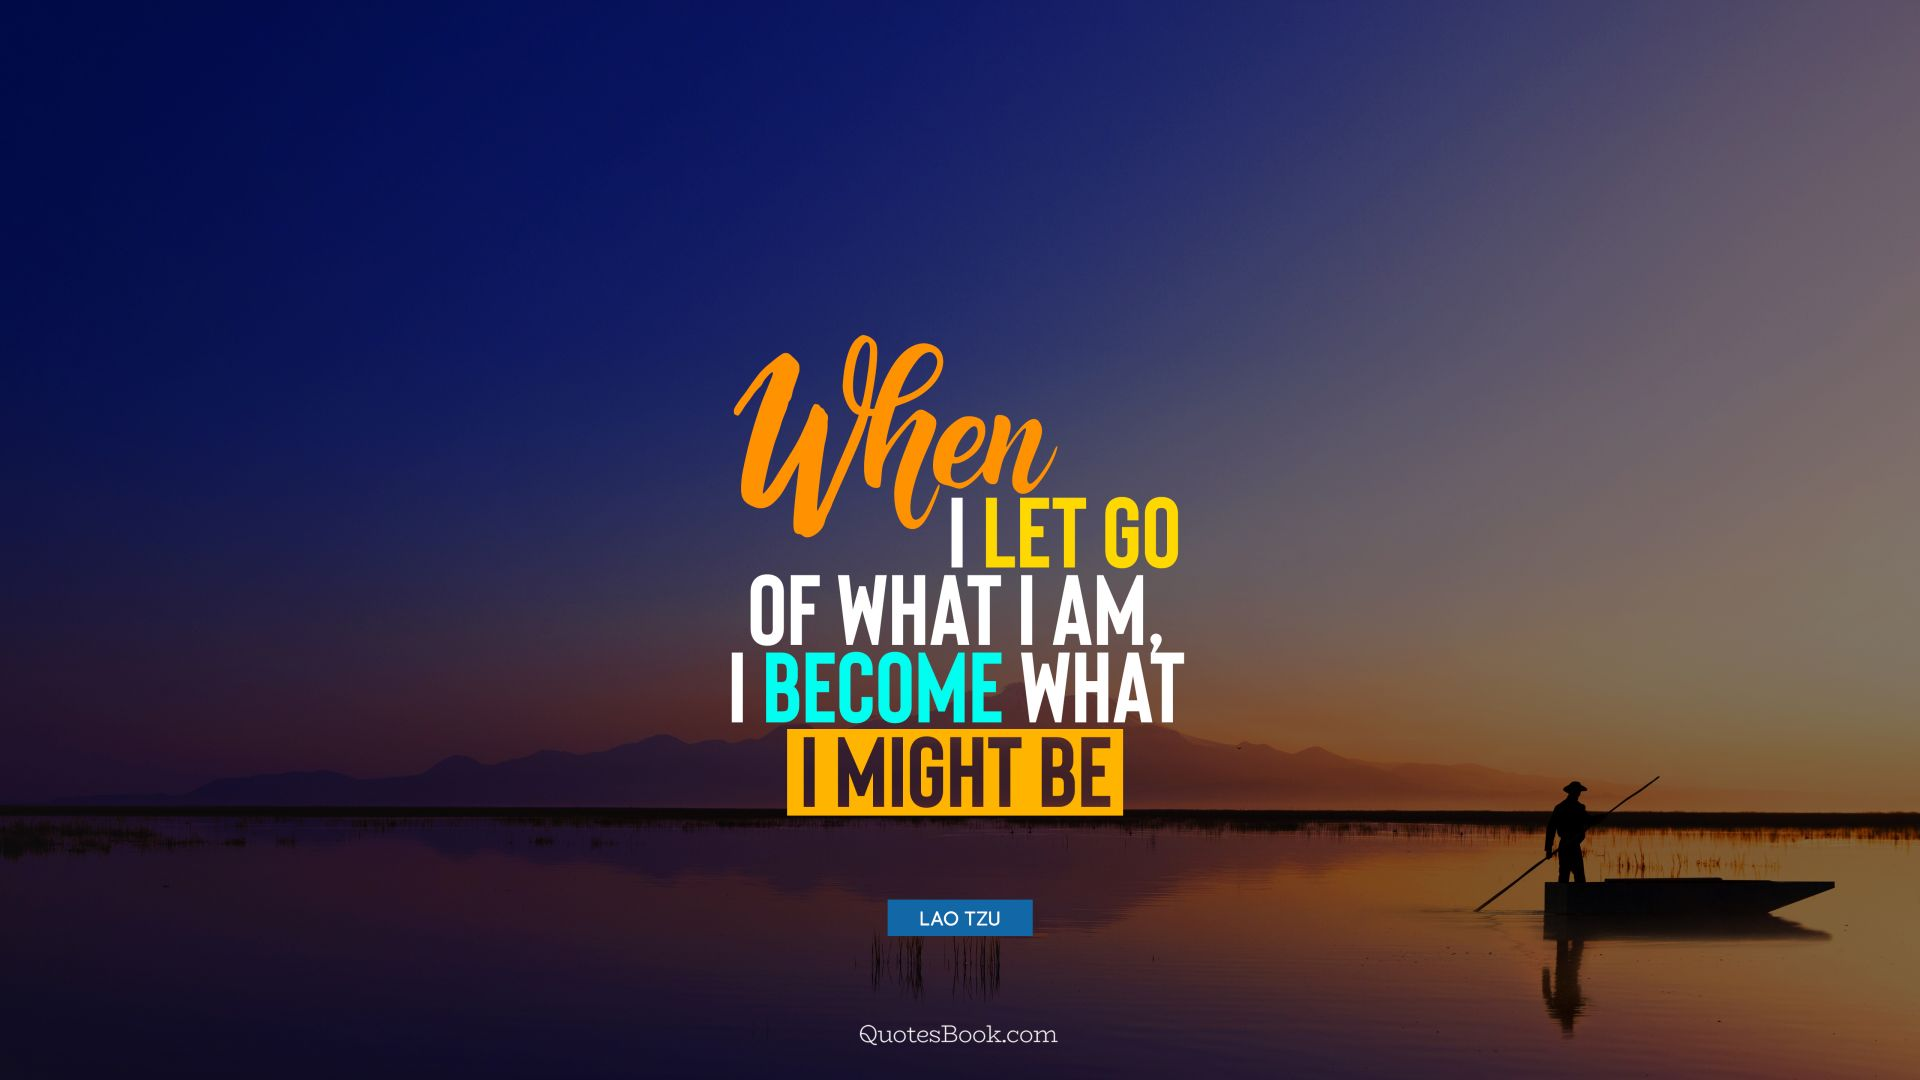 When I let go of what I am, I become what I might be. - Quote by Lao Tzu